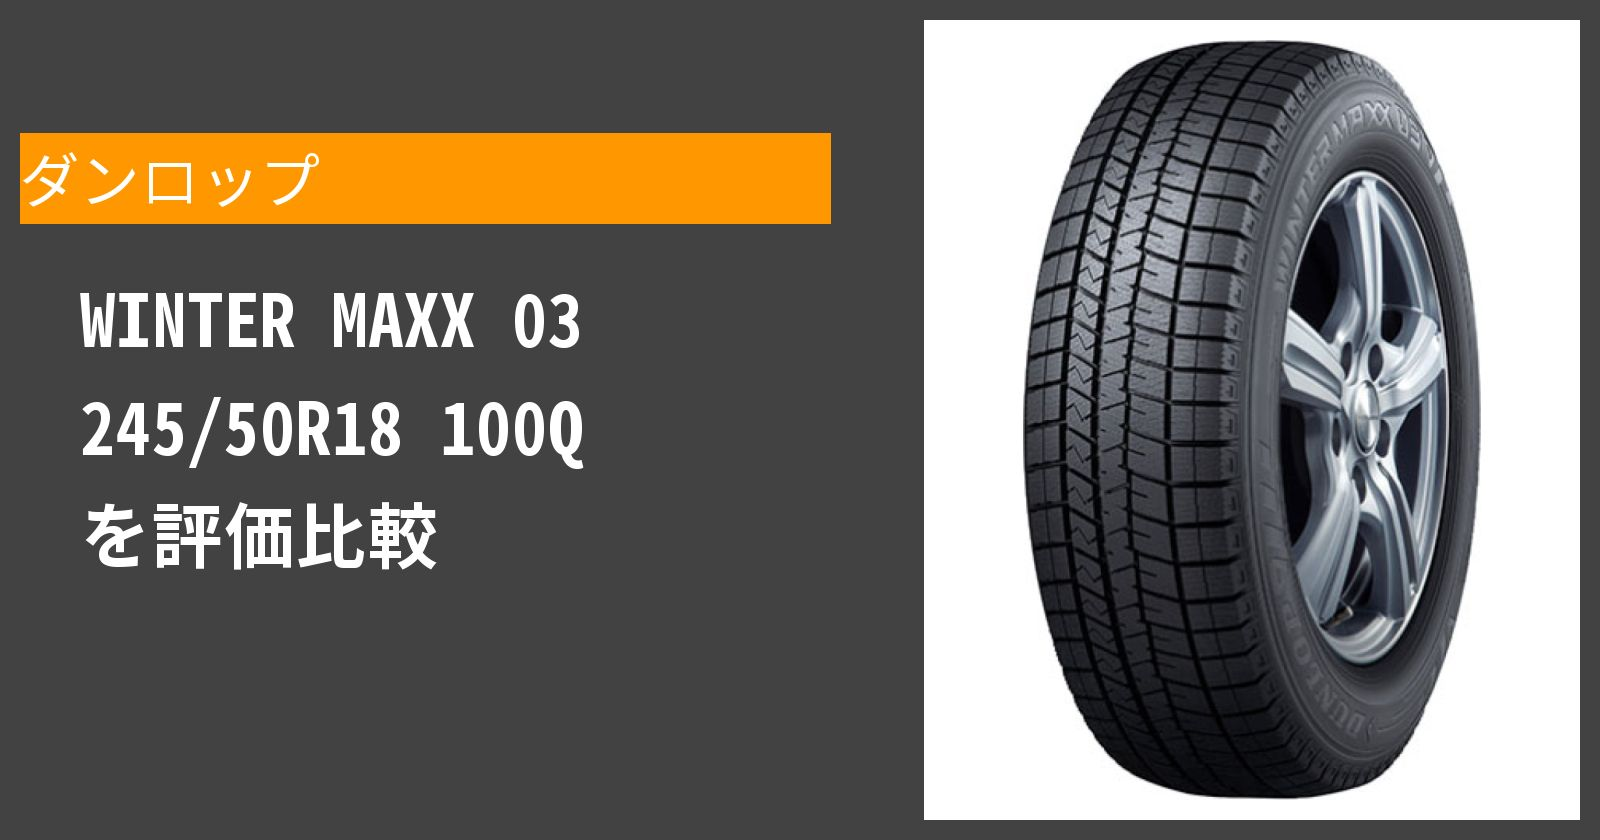 WINTER MAXX 03 245/50R18 100Qを徹底評価